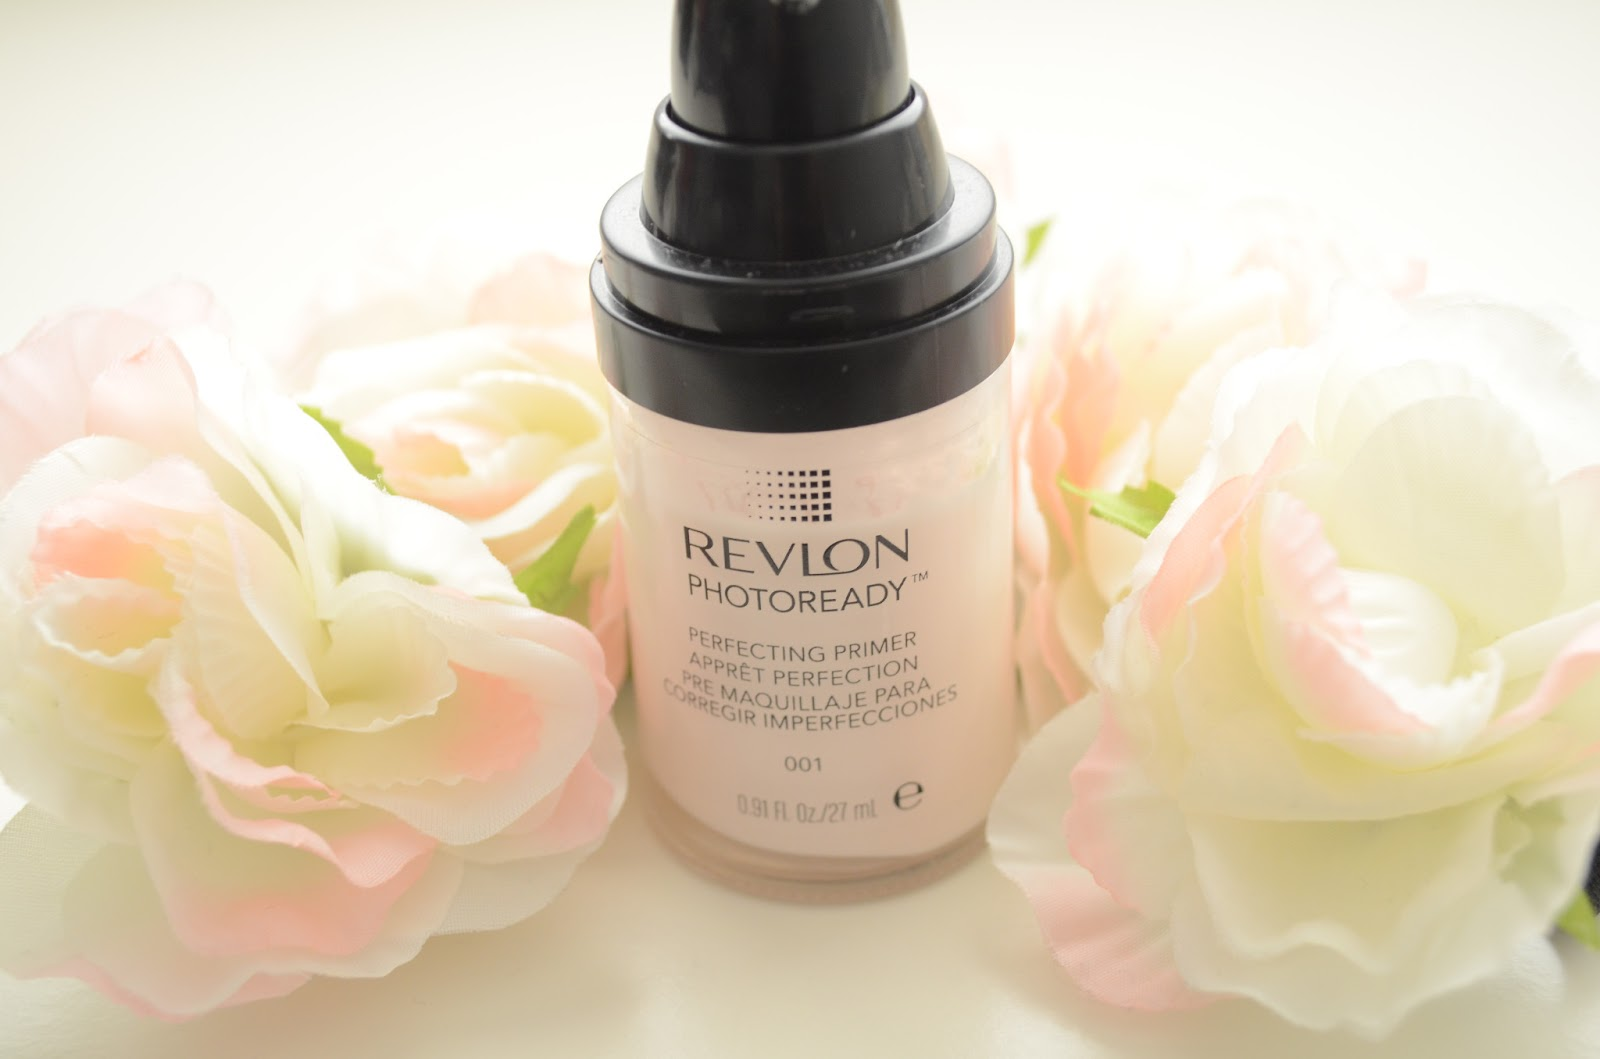 Kem lót Revlon Photoready Perfecting Primer